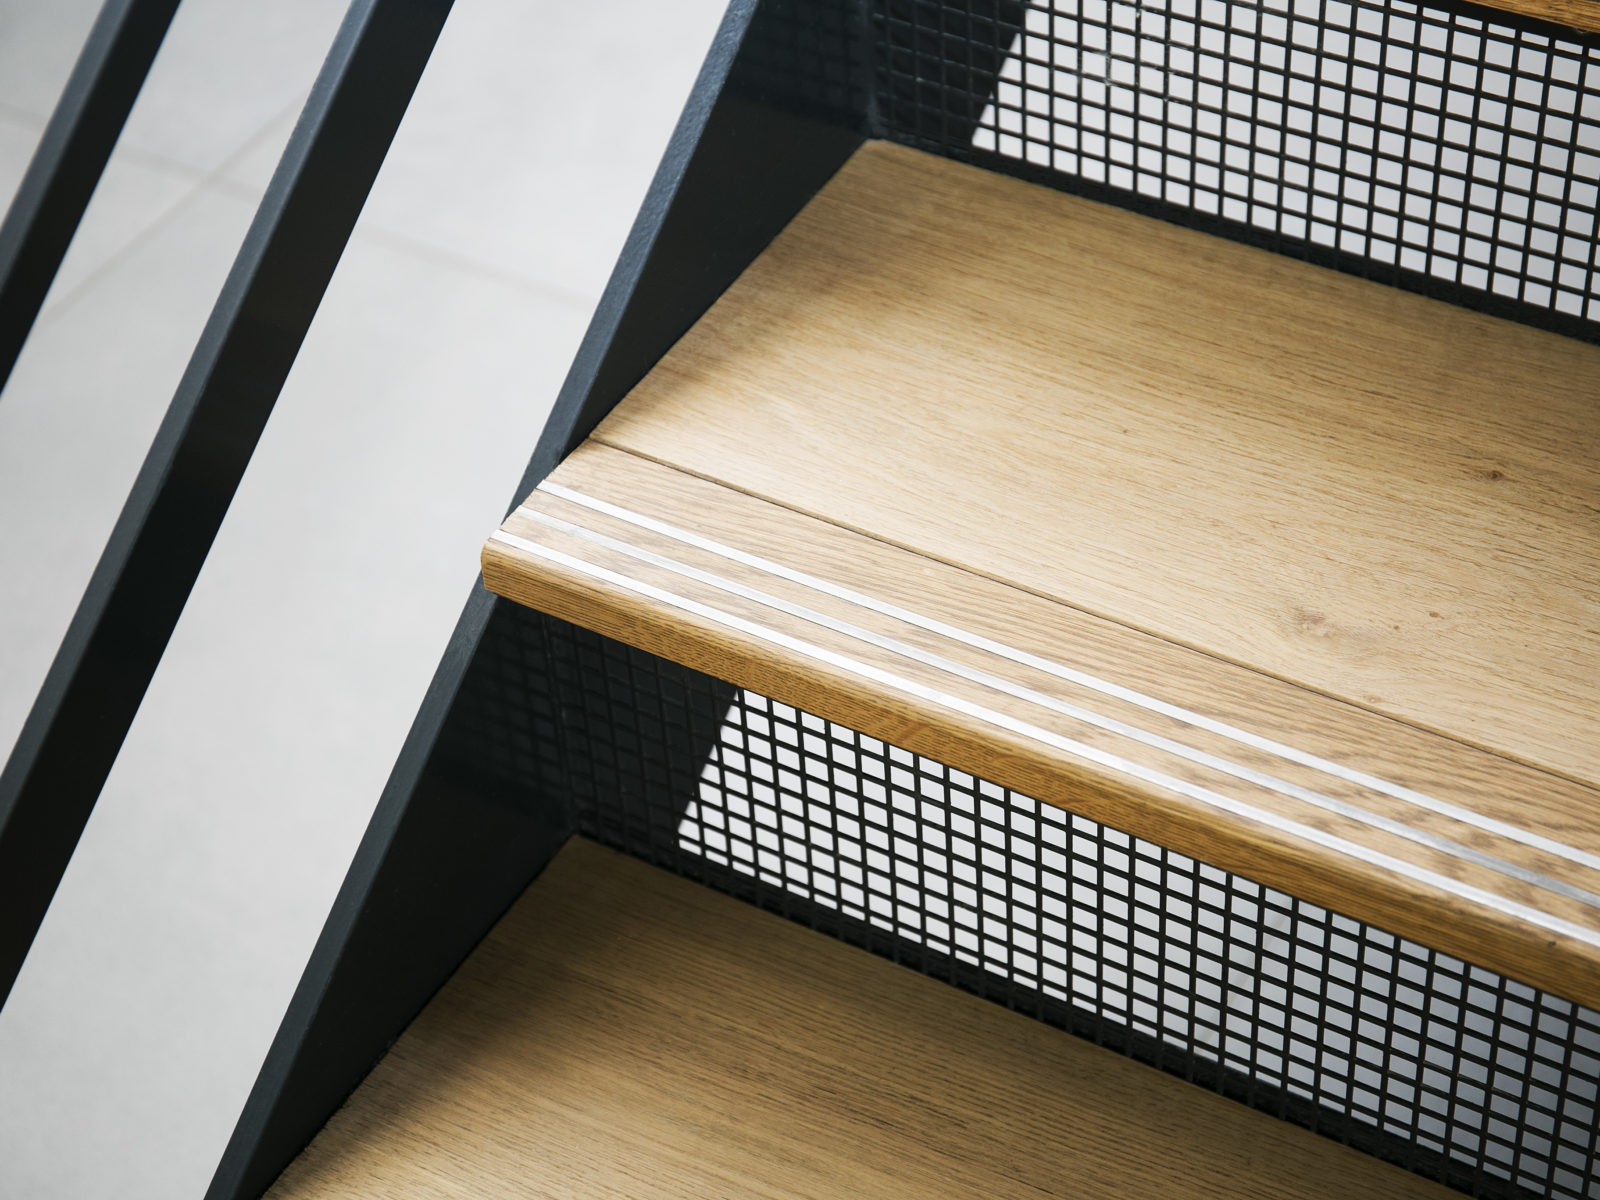 comercial staircase step detail